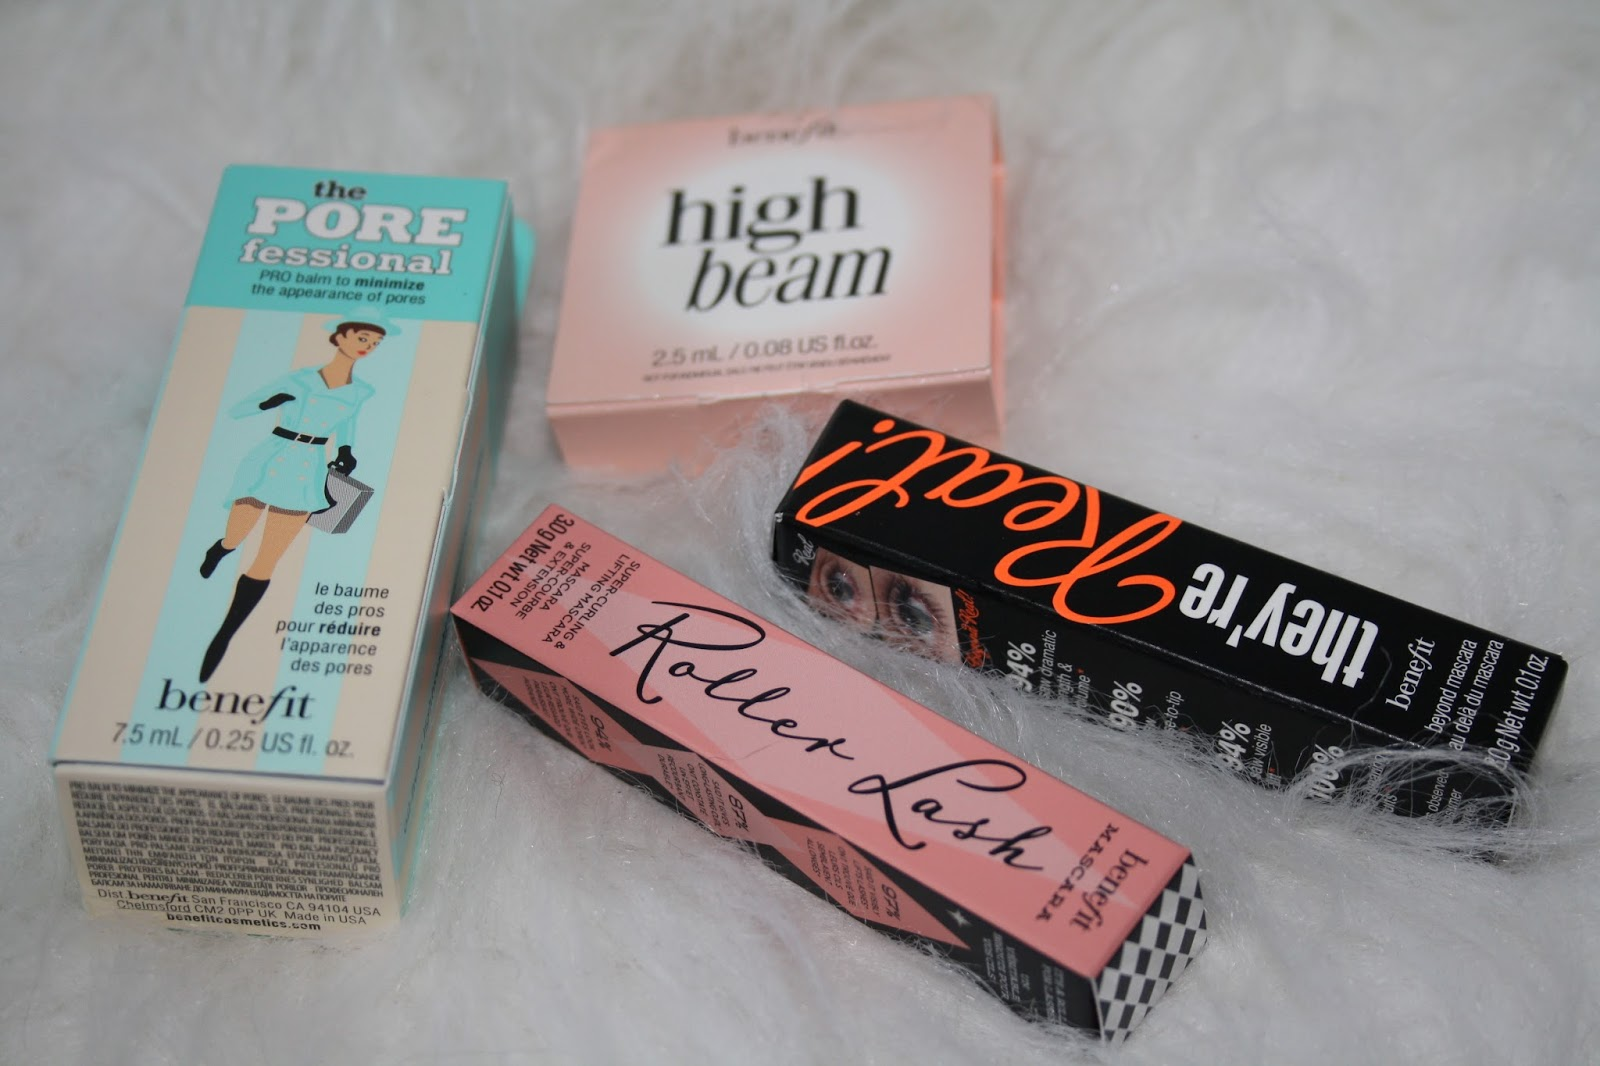 Benefit Mascara Masterclass with Birchbox